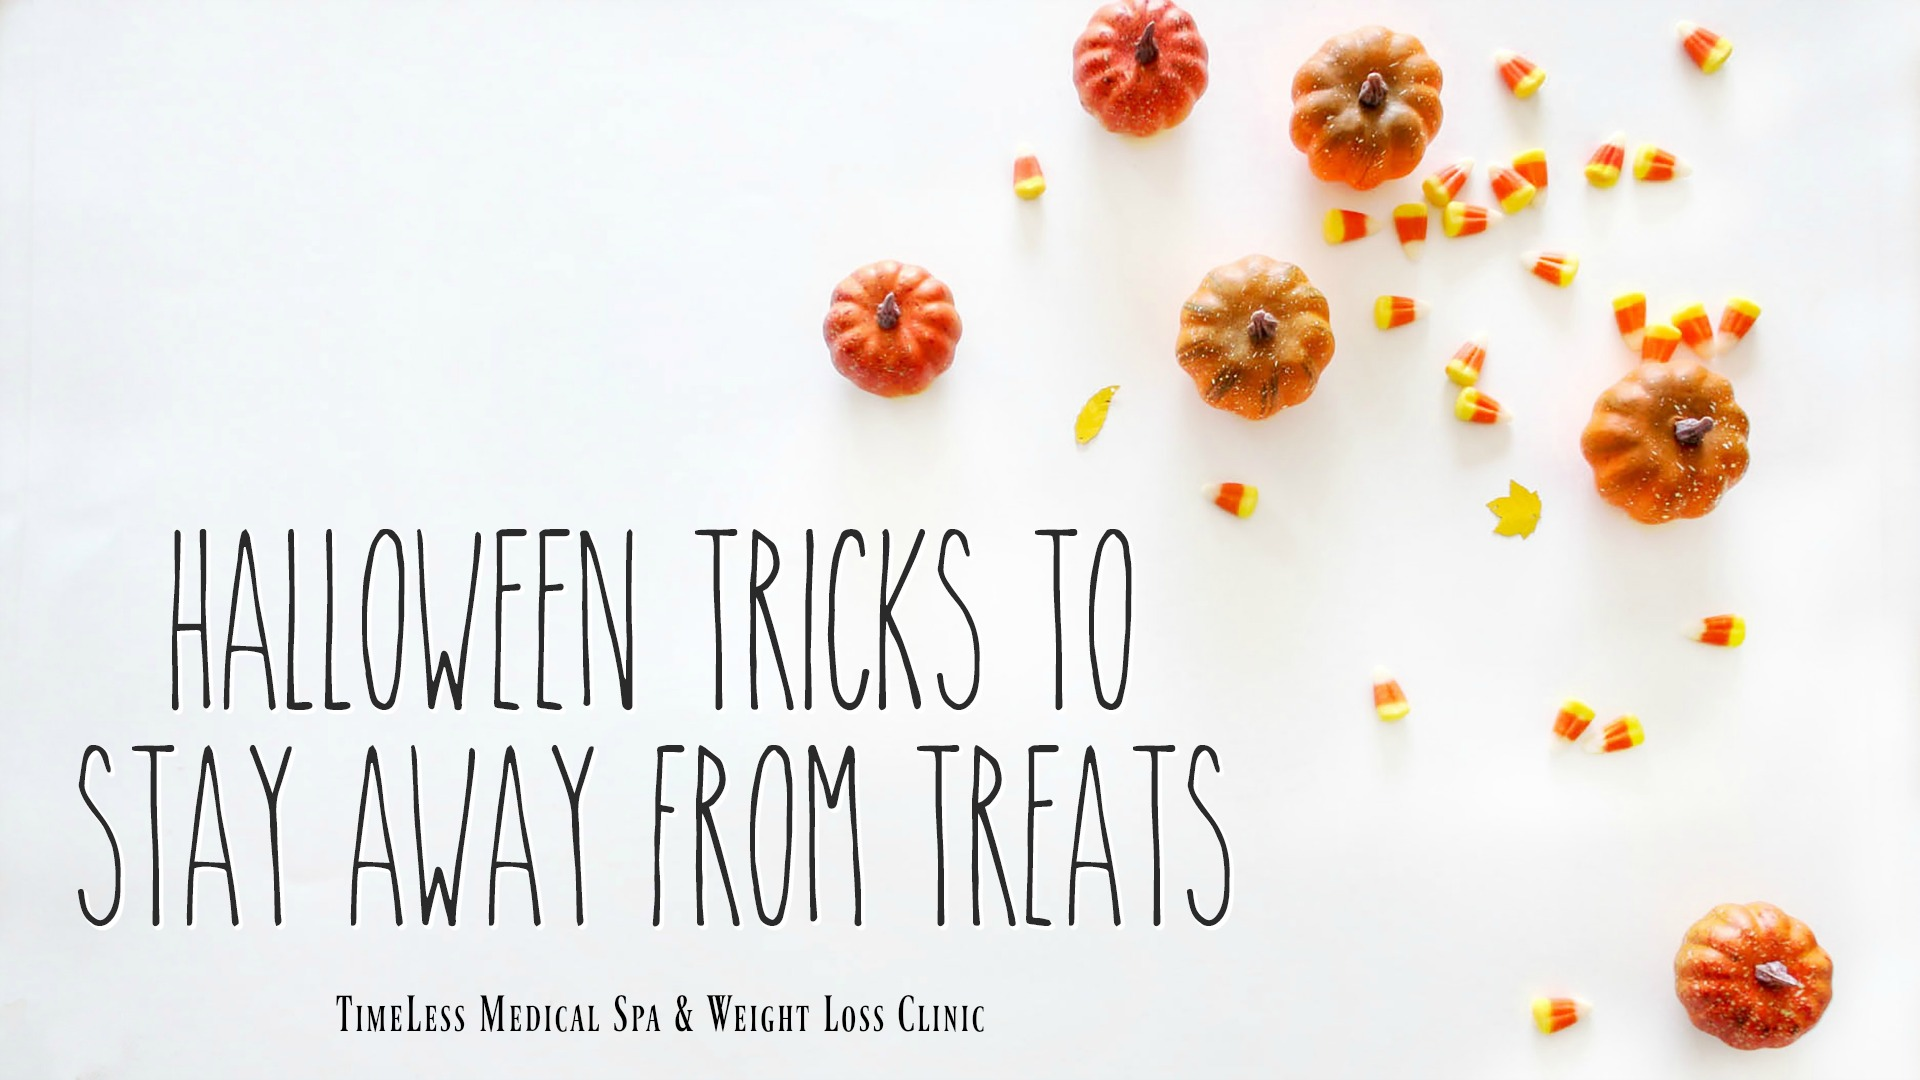 Halloween Tricks to Stay Away from Treats